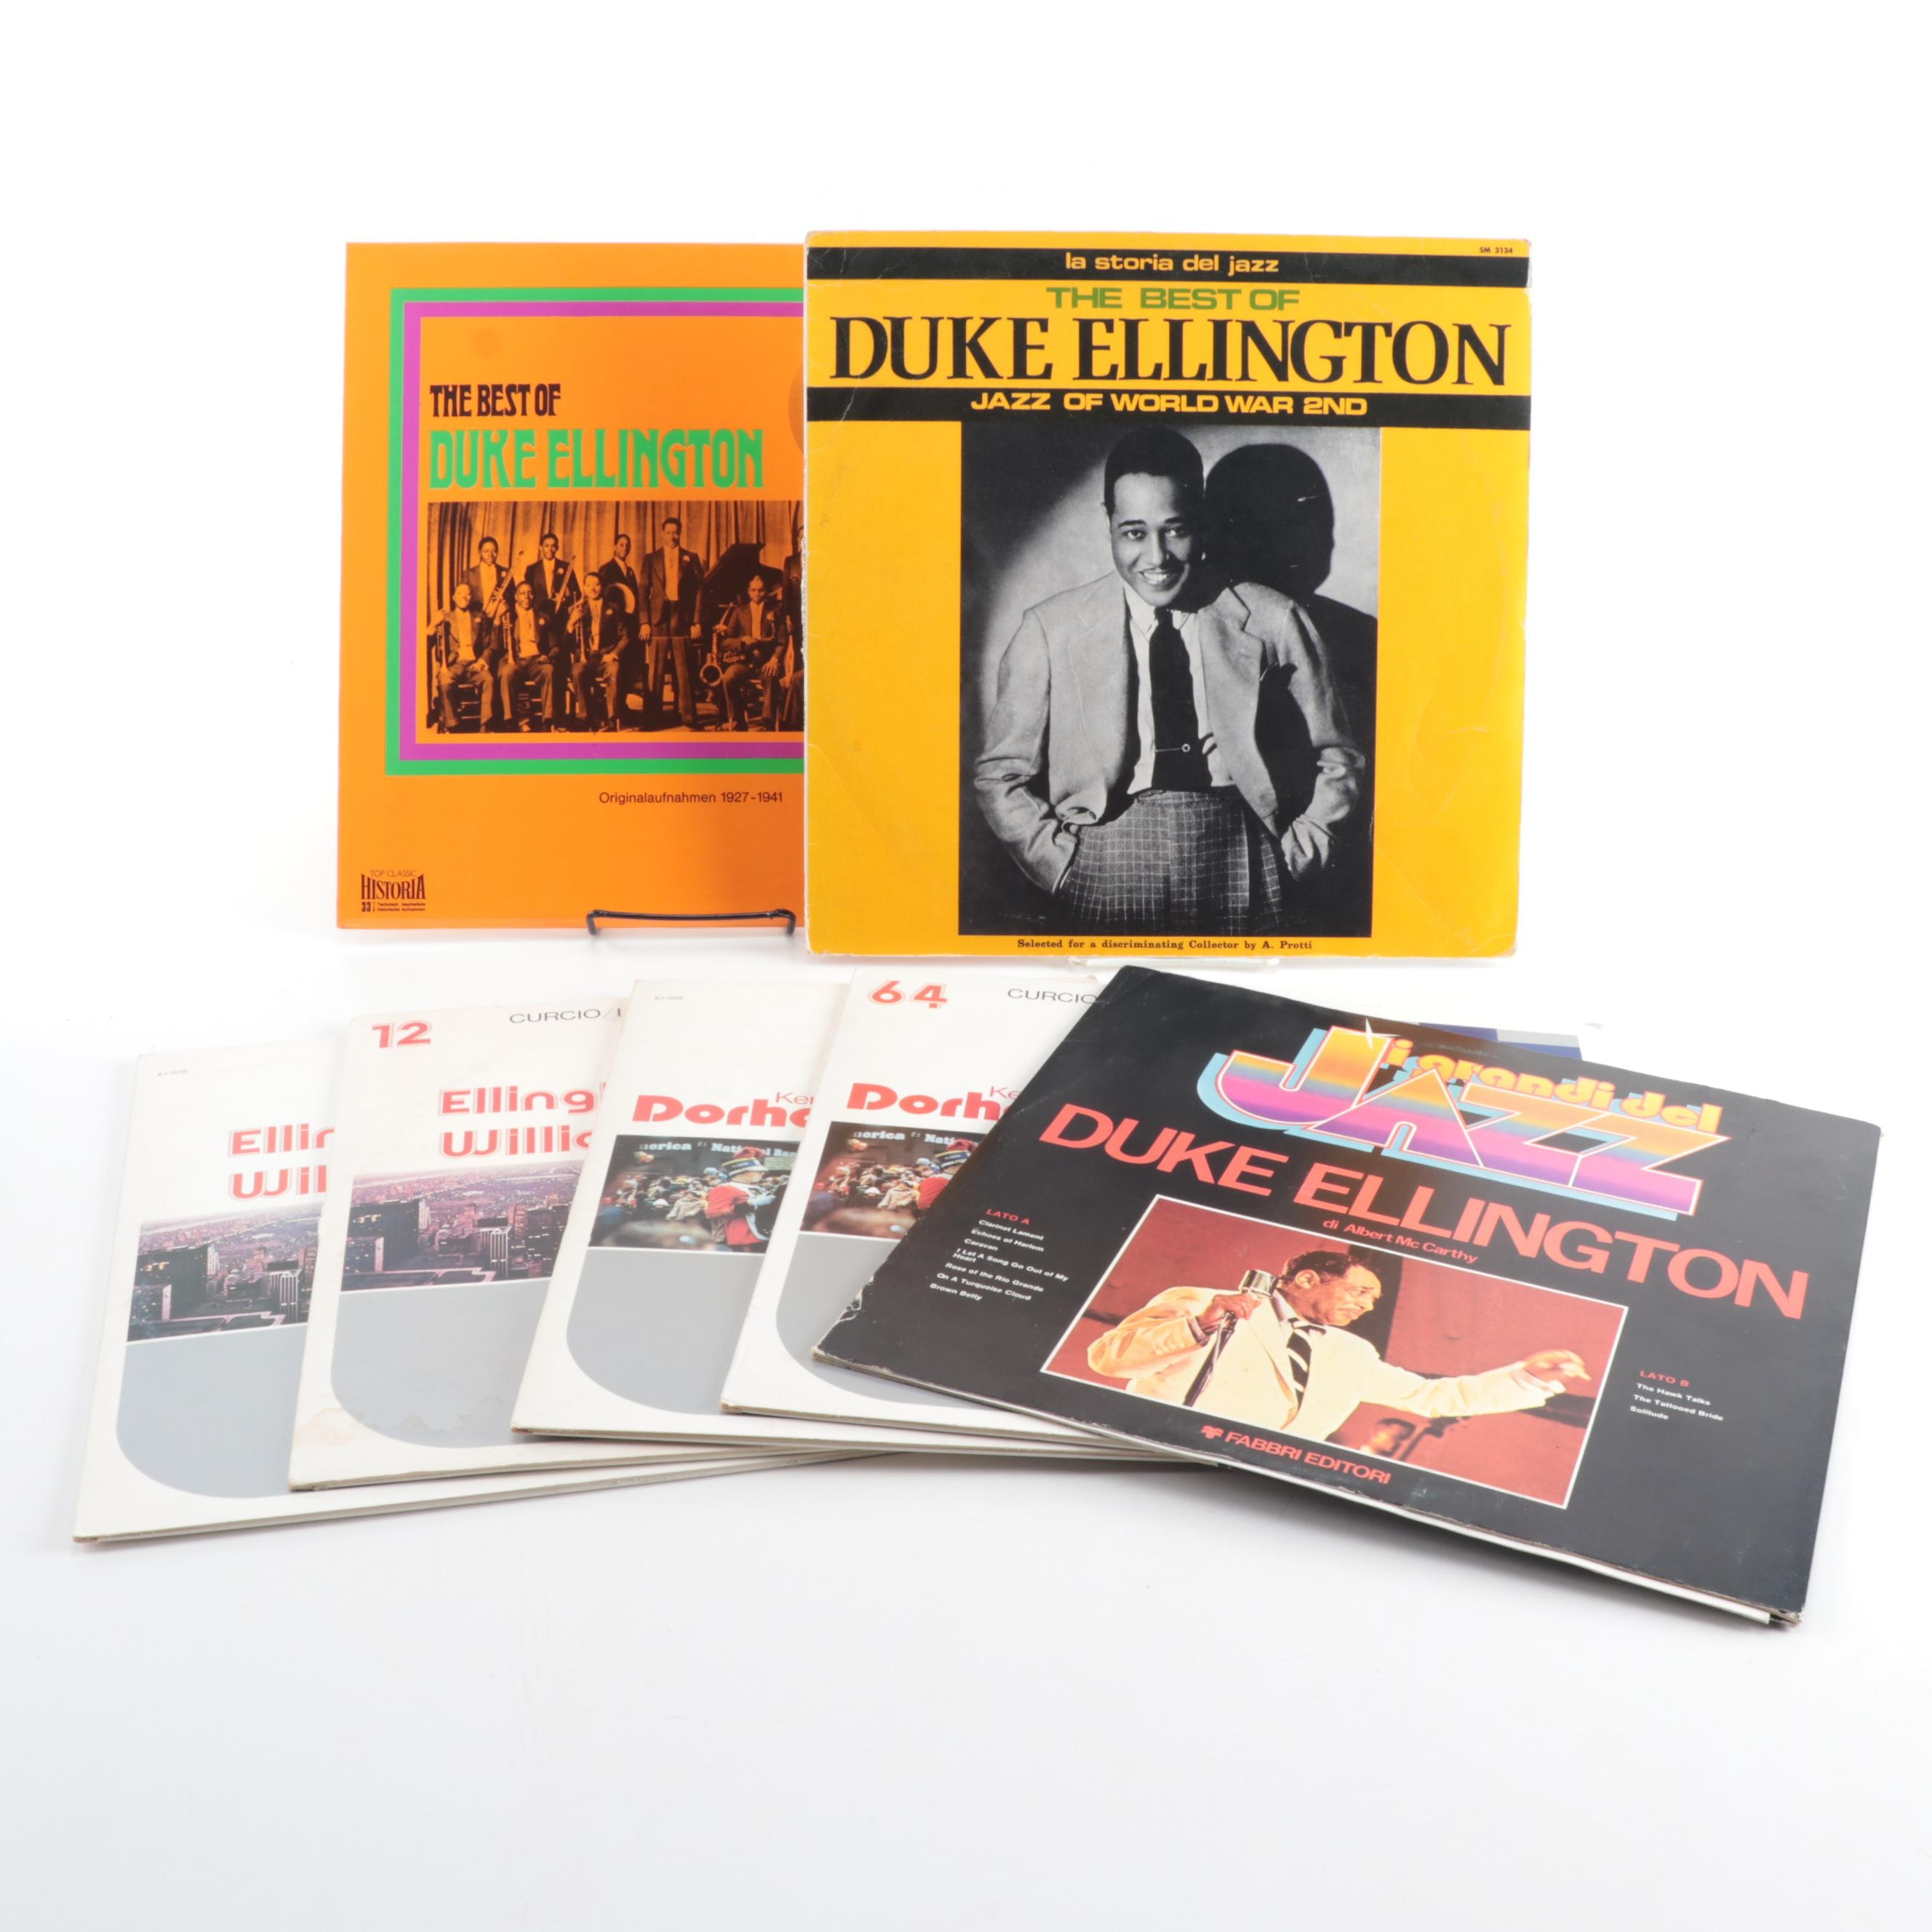 Duke Ellington Records including Imports and Europa Jazz Compilations